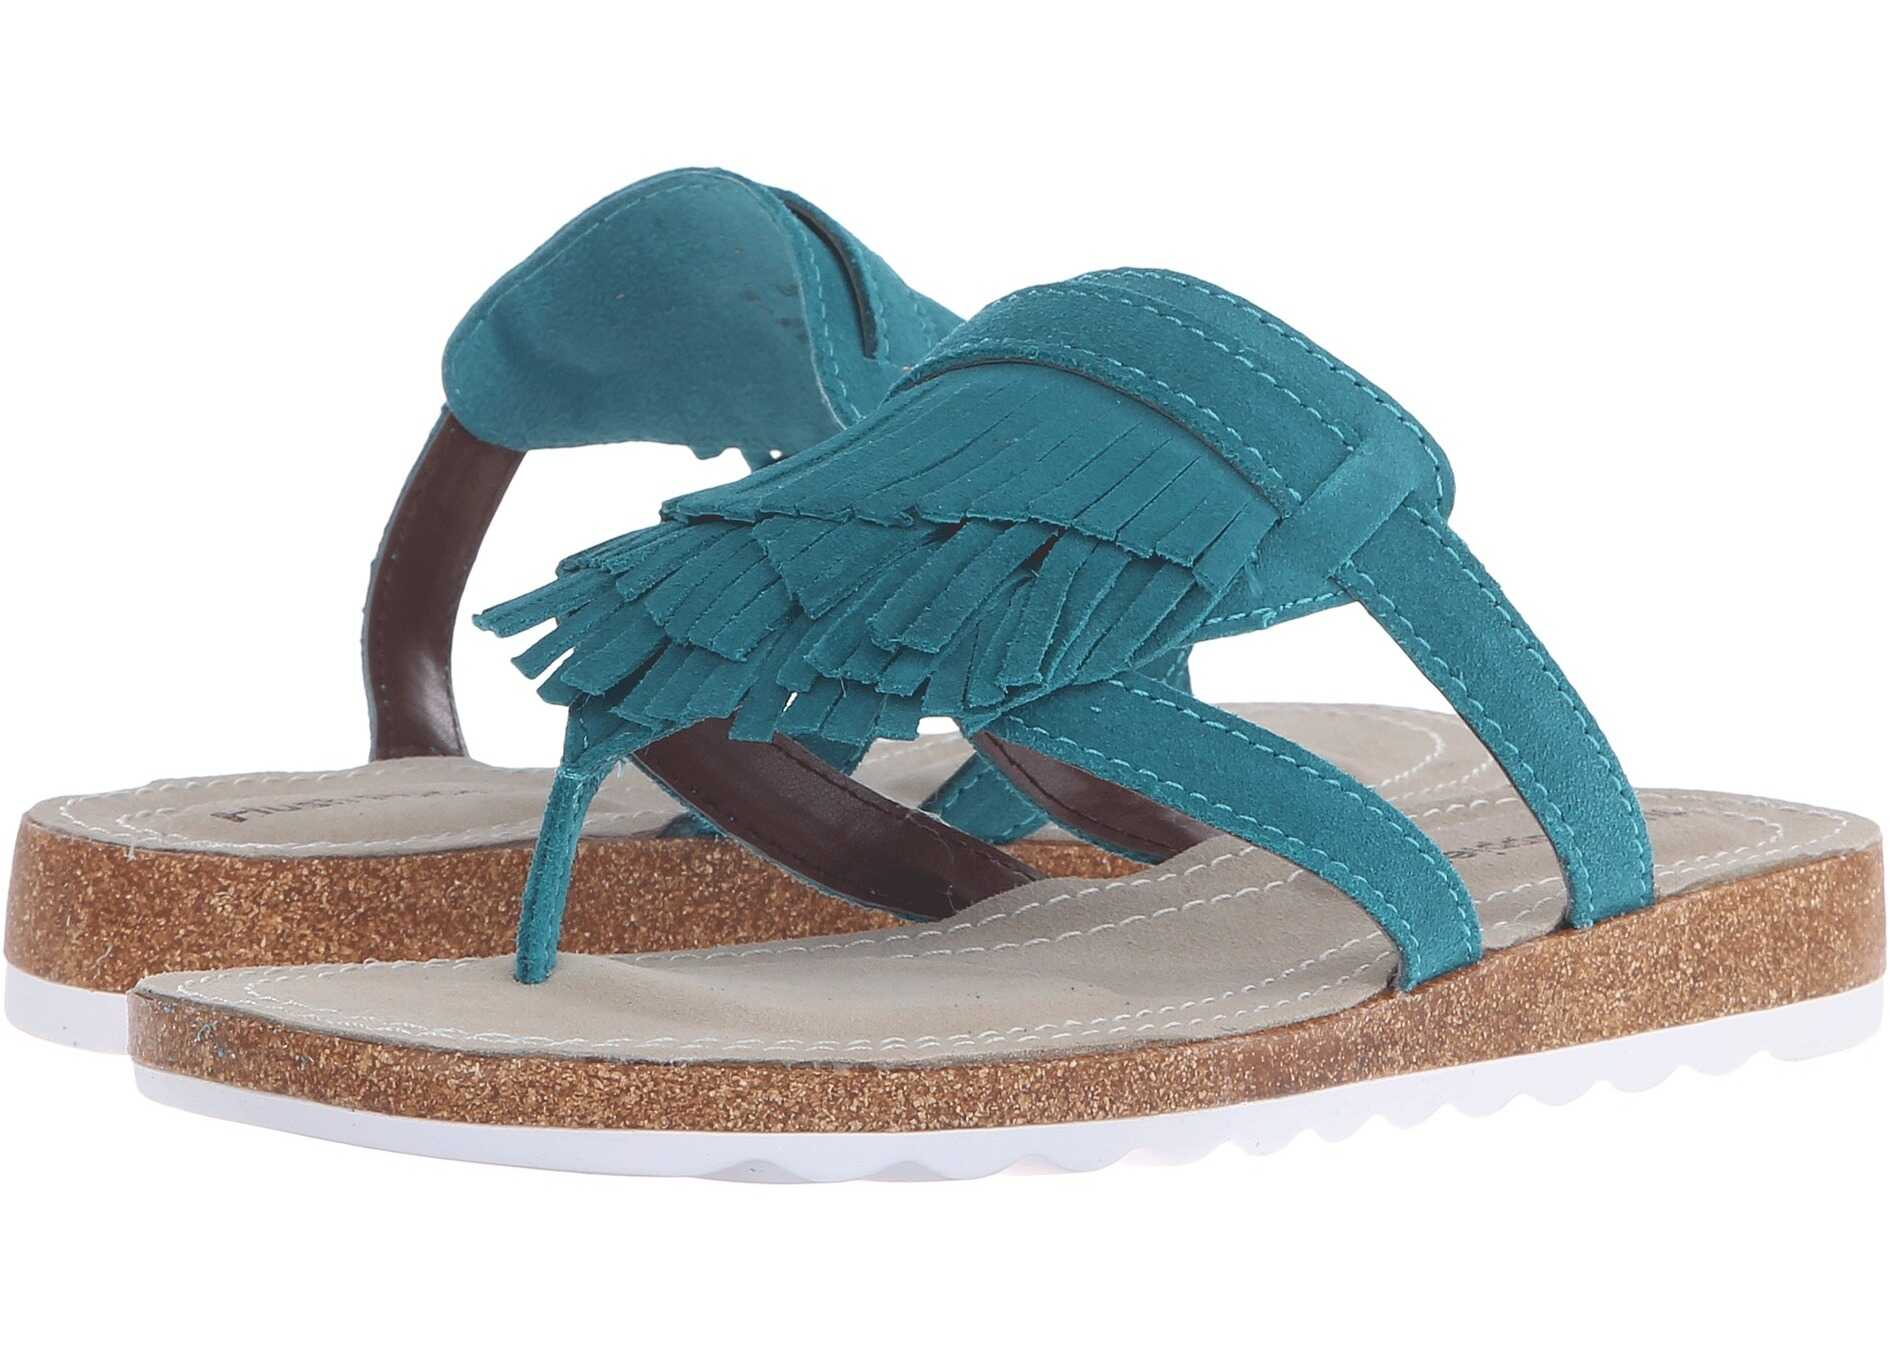 Hush Puppies Bryson Jade Turquoise Suede